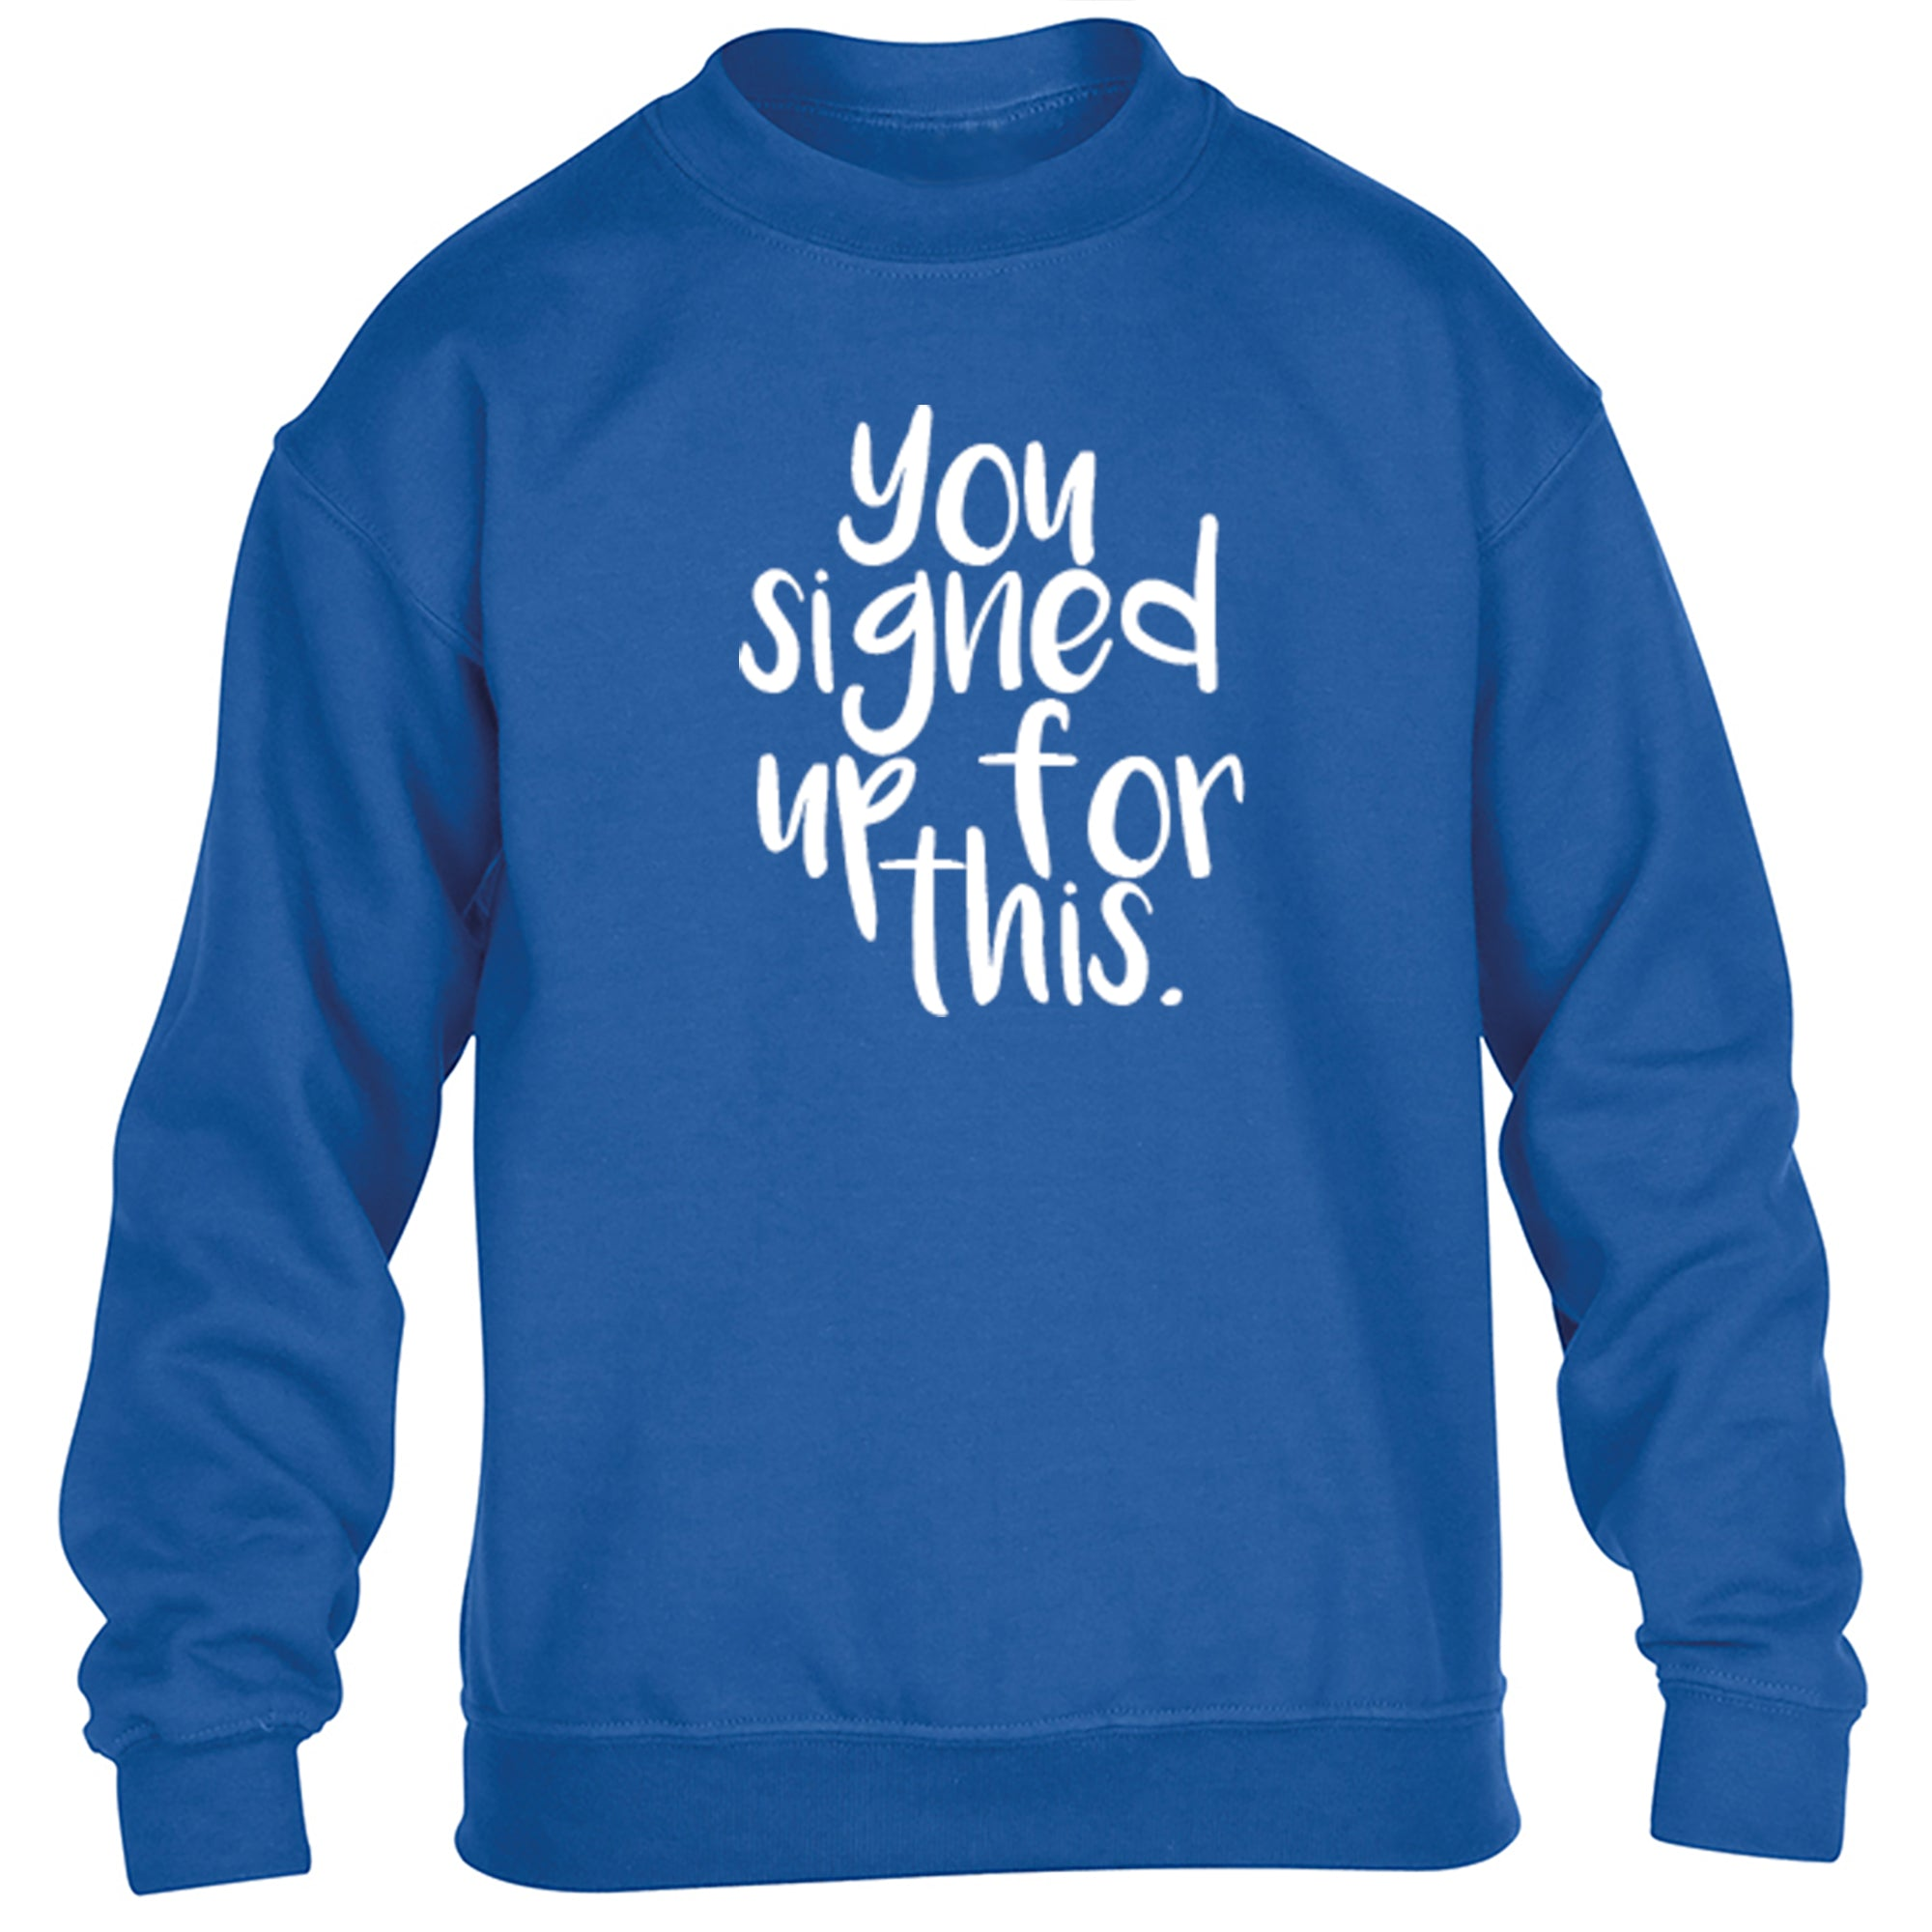 You Signed Up For This Childrens Ages 3/4-12/14 Unisex Jumper S0348 - Illustrated Identity Ltd.